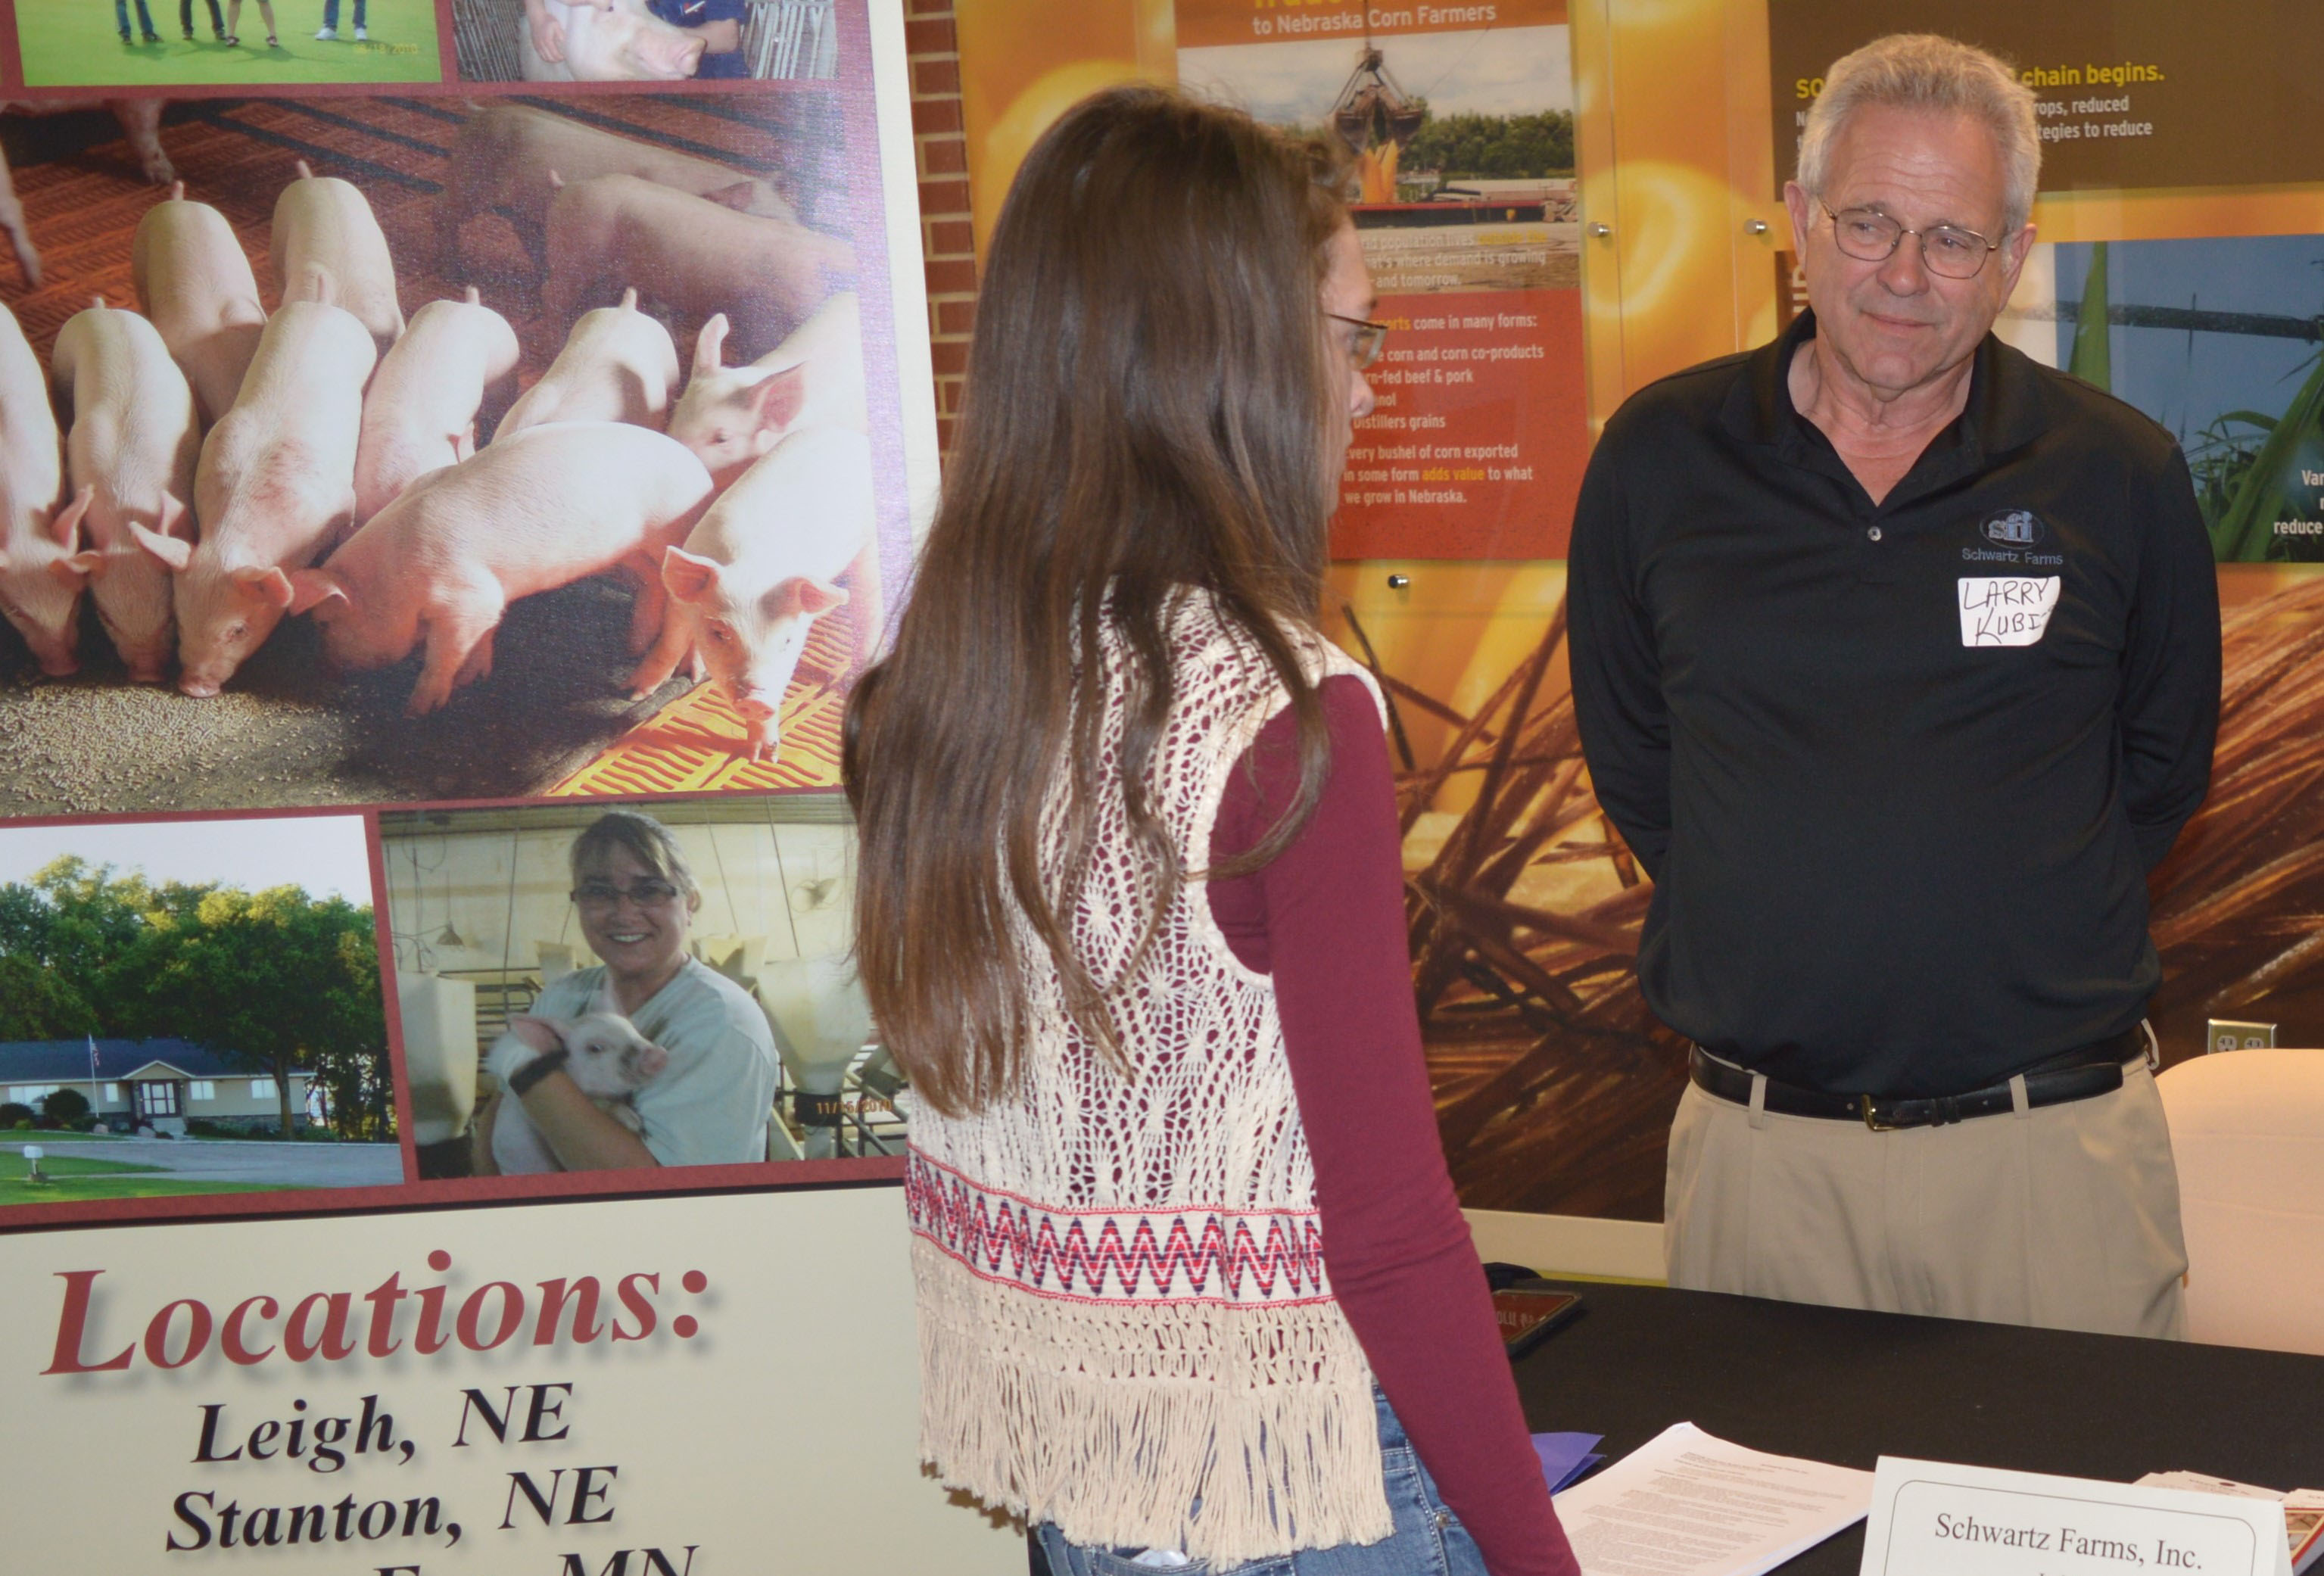 NCTA students can interact with employers at the NCTA Career Fair on Thursday in the Nebraska Agriculture Industry Education Center on campus. (NCTA News photo)